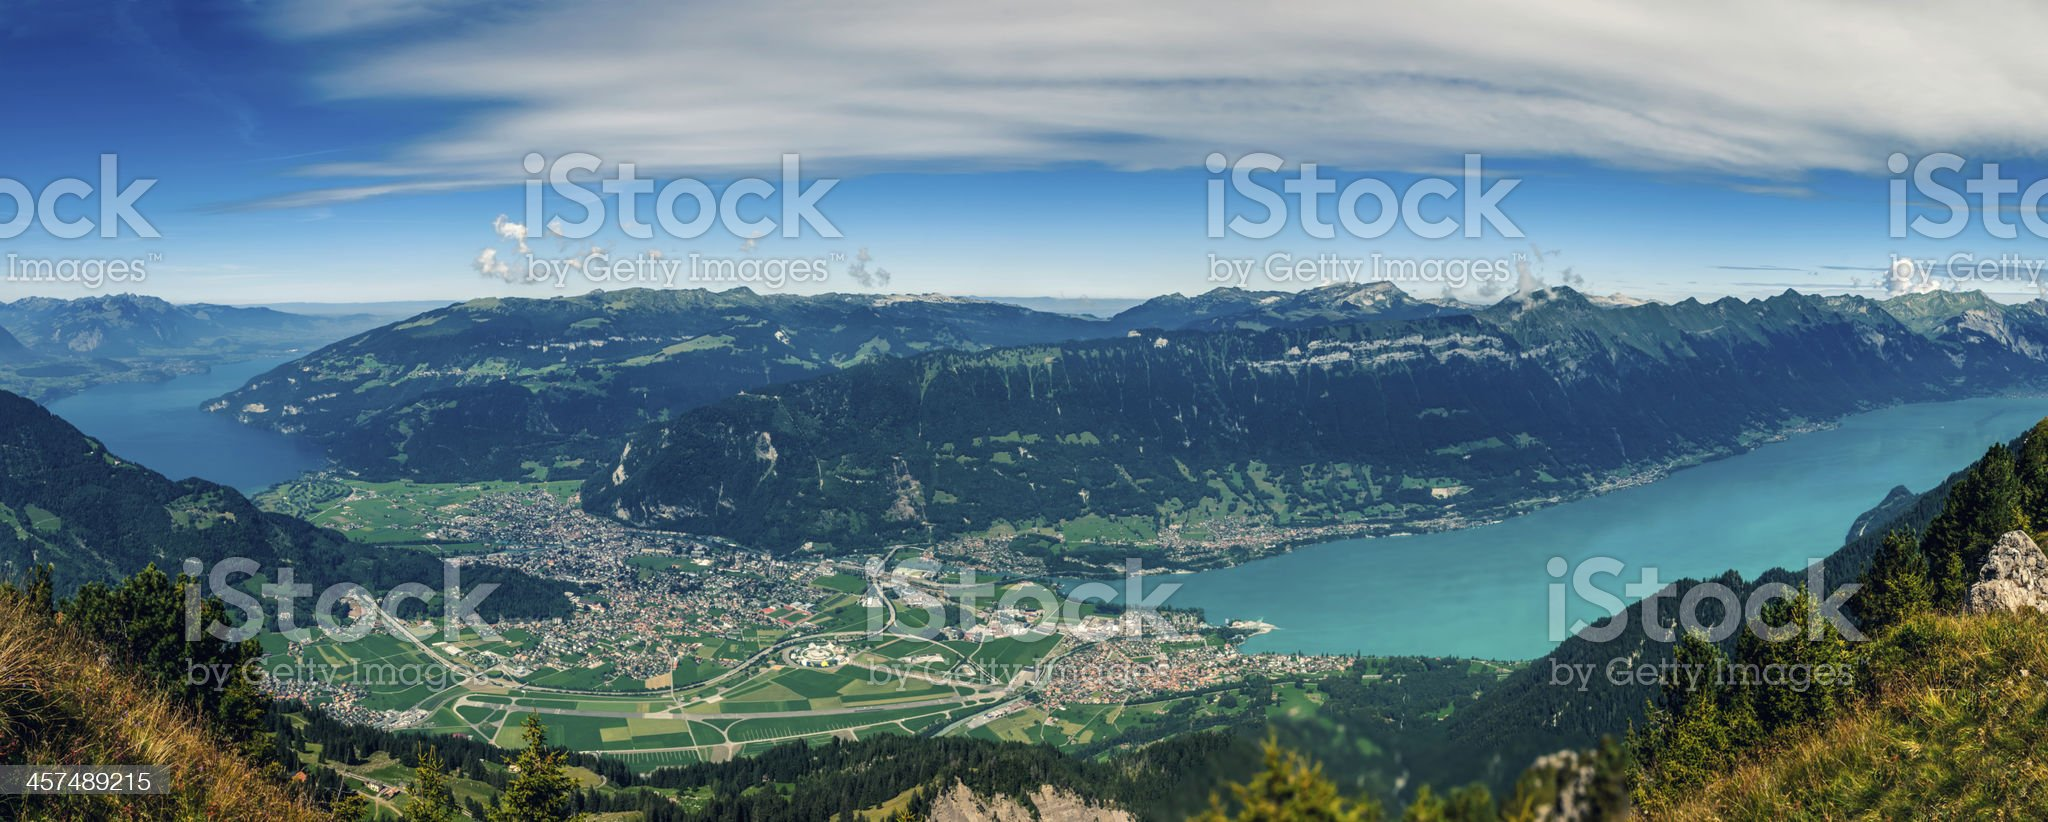 Swiss town of Interlaken with Thun and Brienze lakes (II) royalty-free stock photo